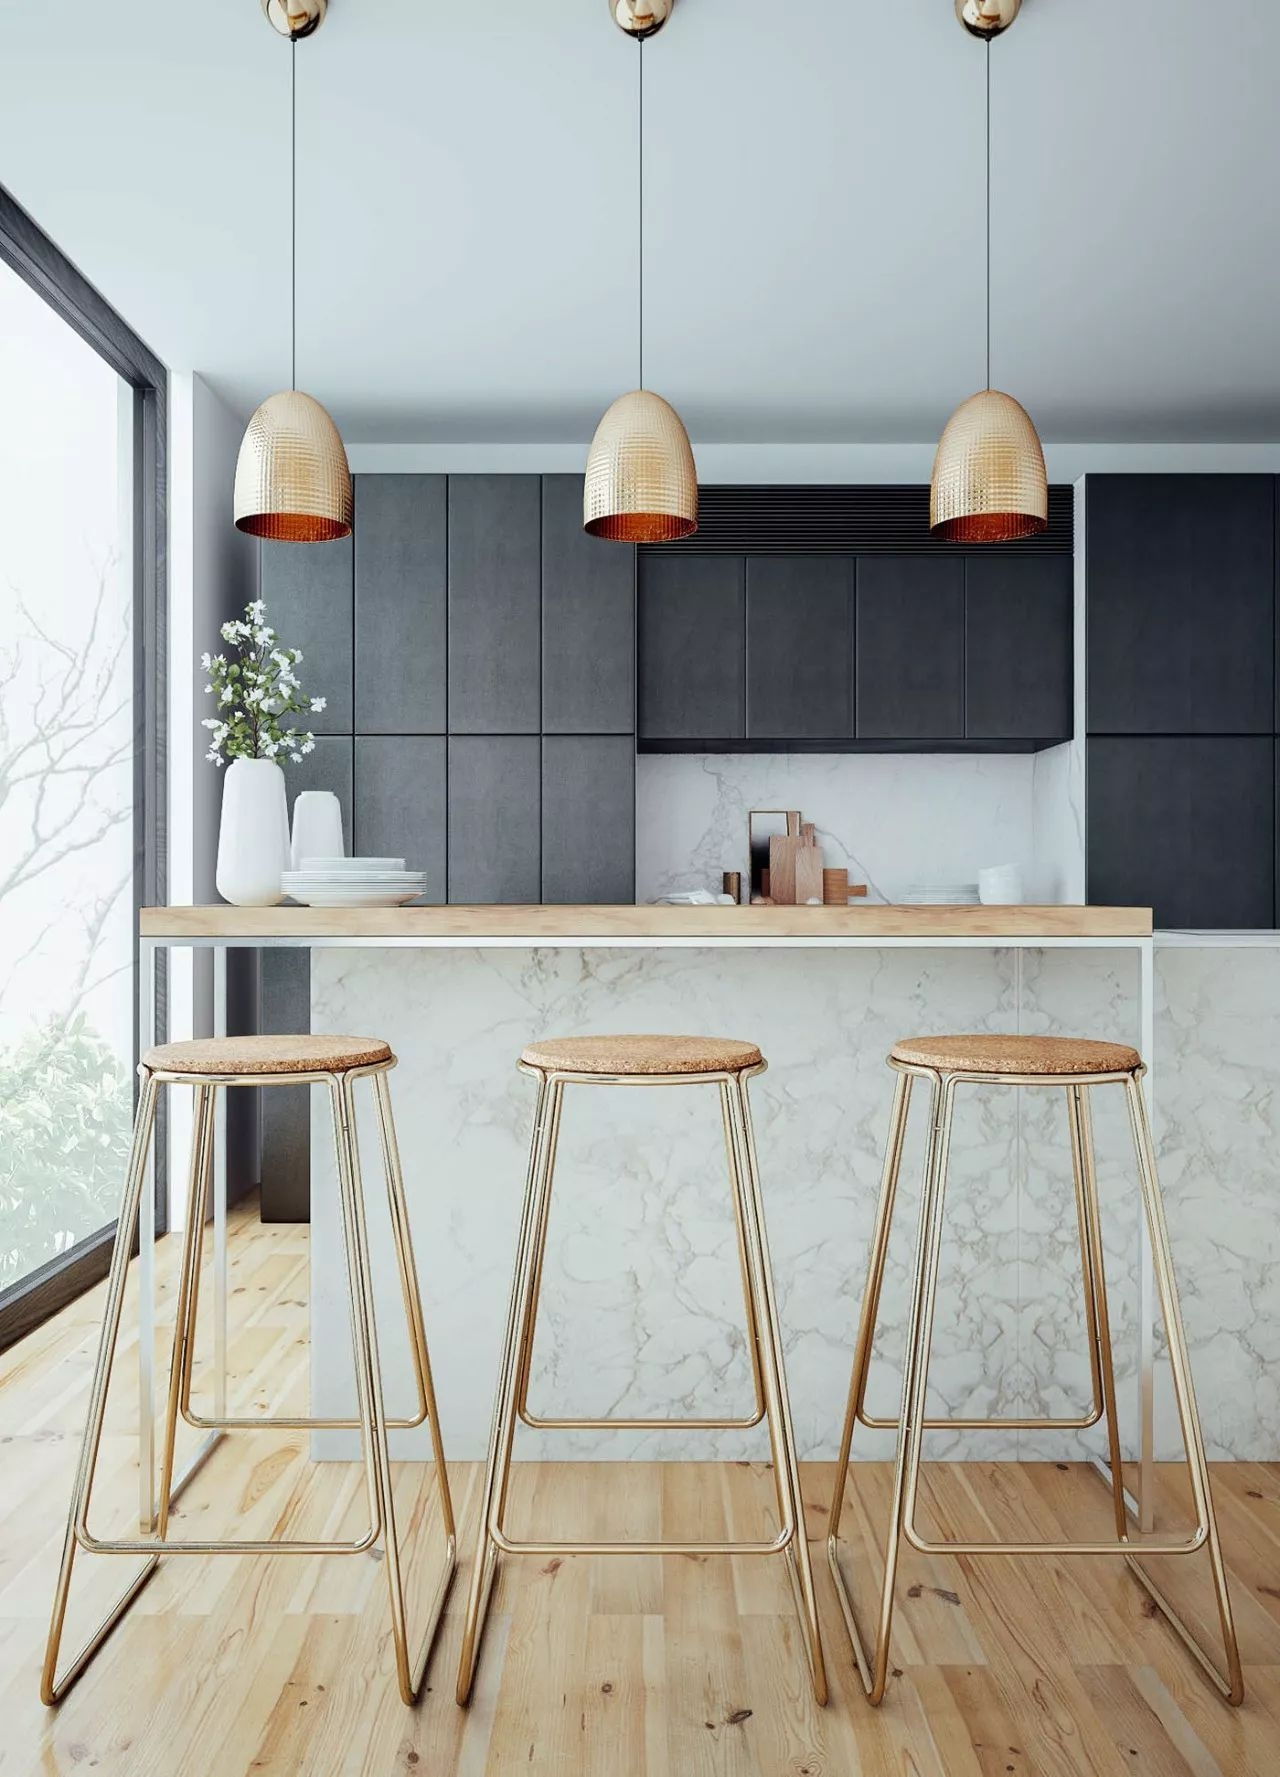 Those Three Barstools Will Bring Class And Modern Flavor To Your Bright  Kitchen. Each Of Those Beauties Stands On A Tubular Metal Frame With Gold  Finish, ...